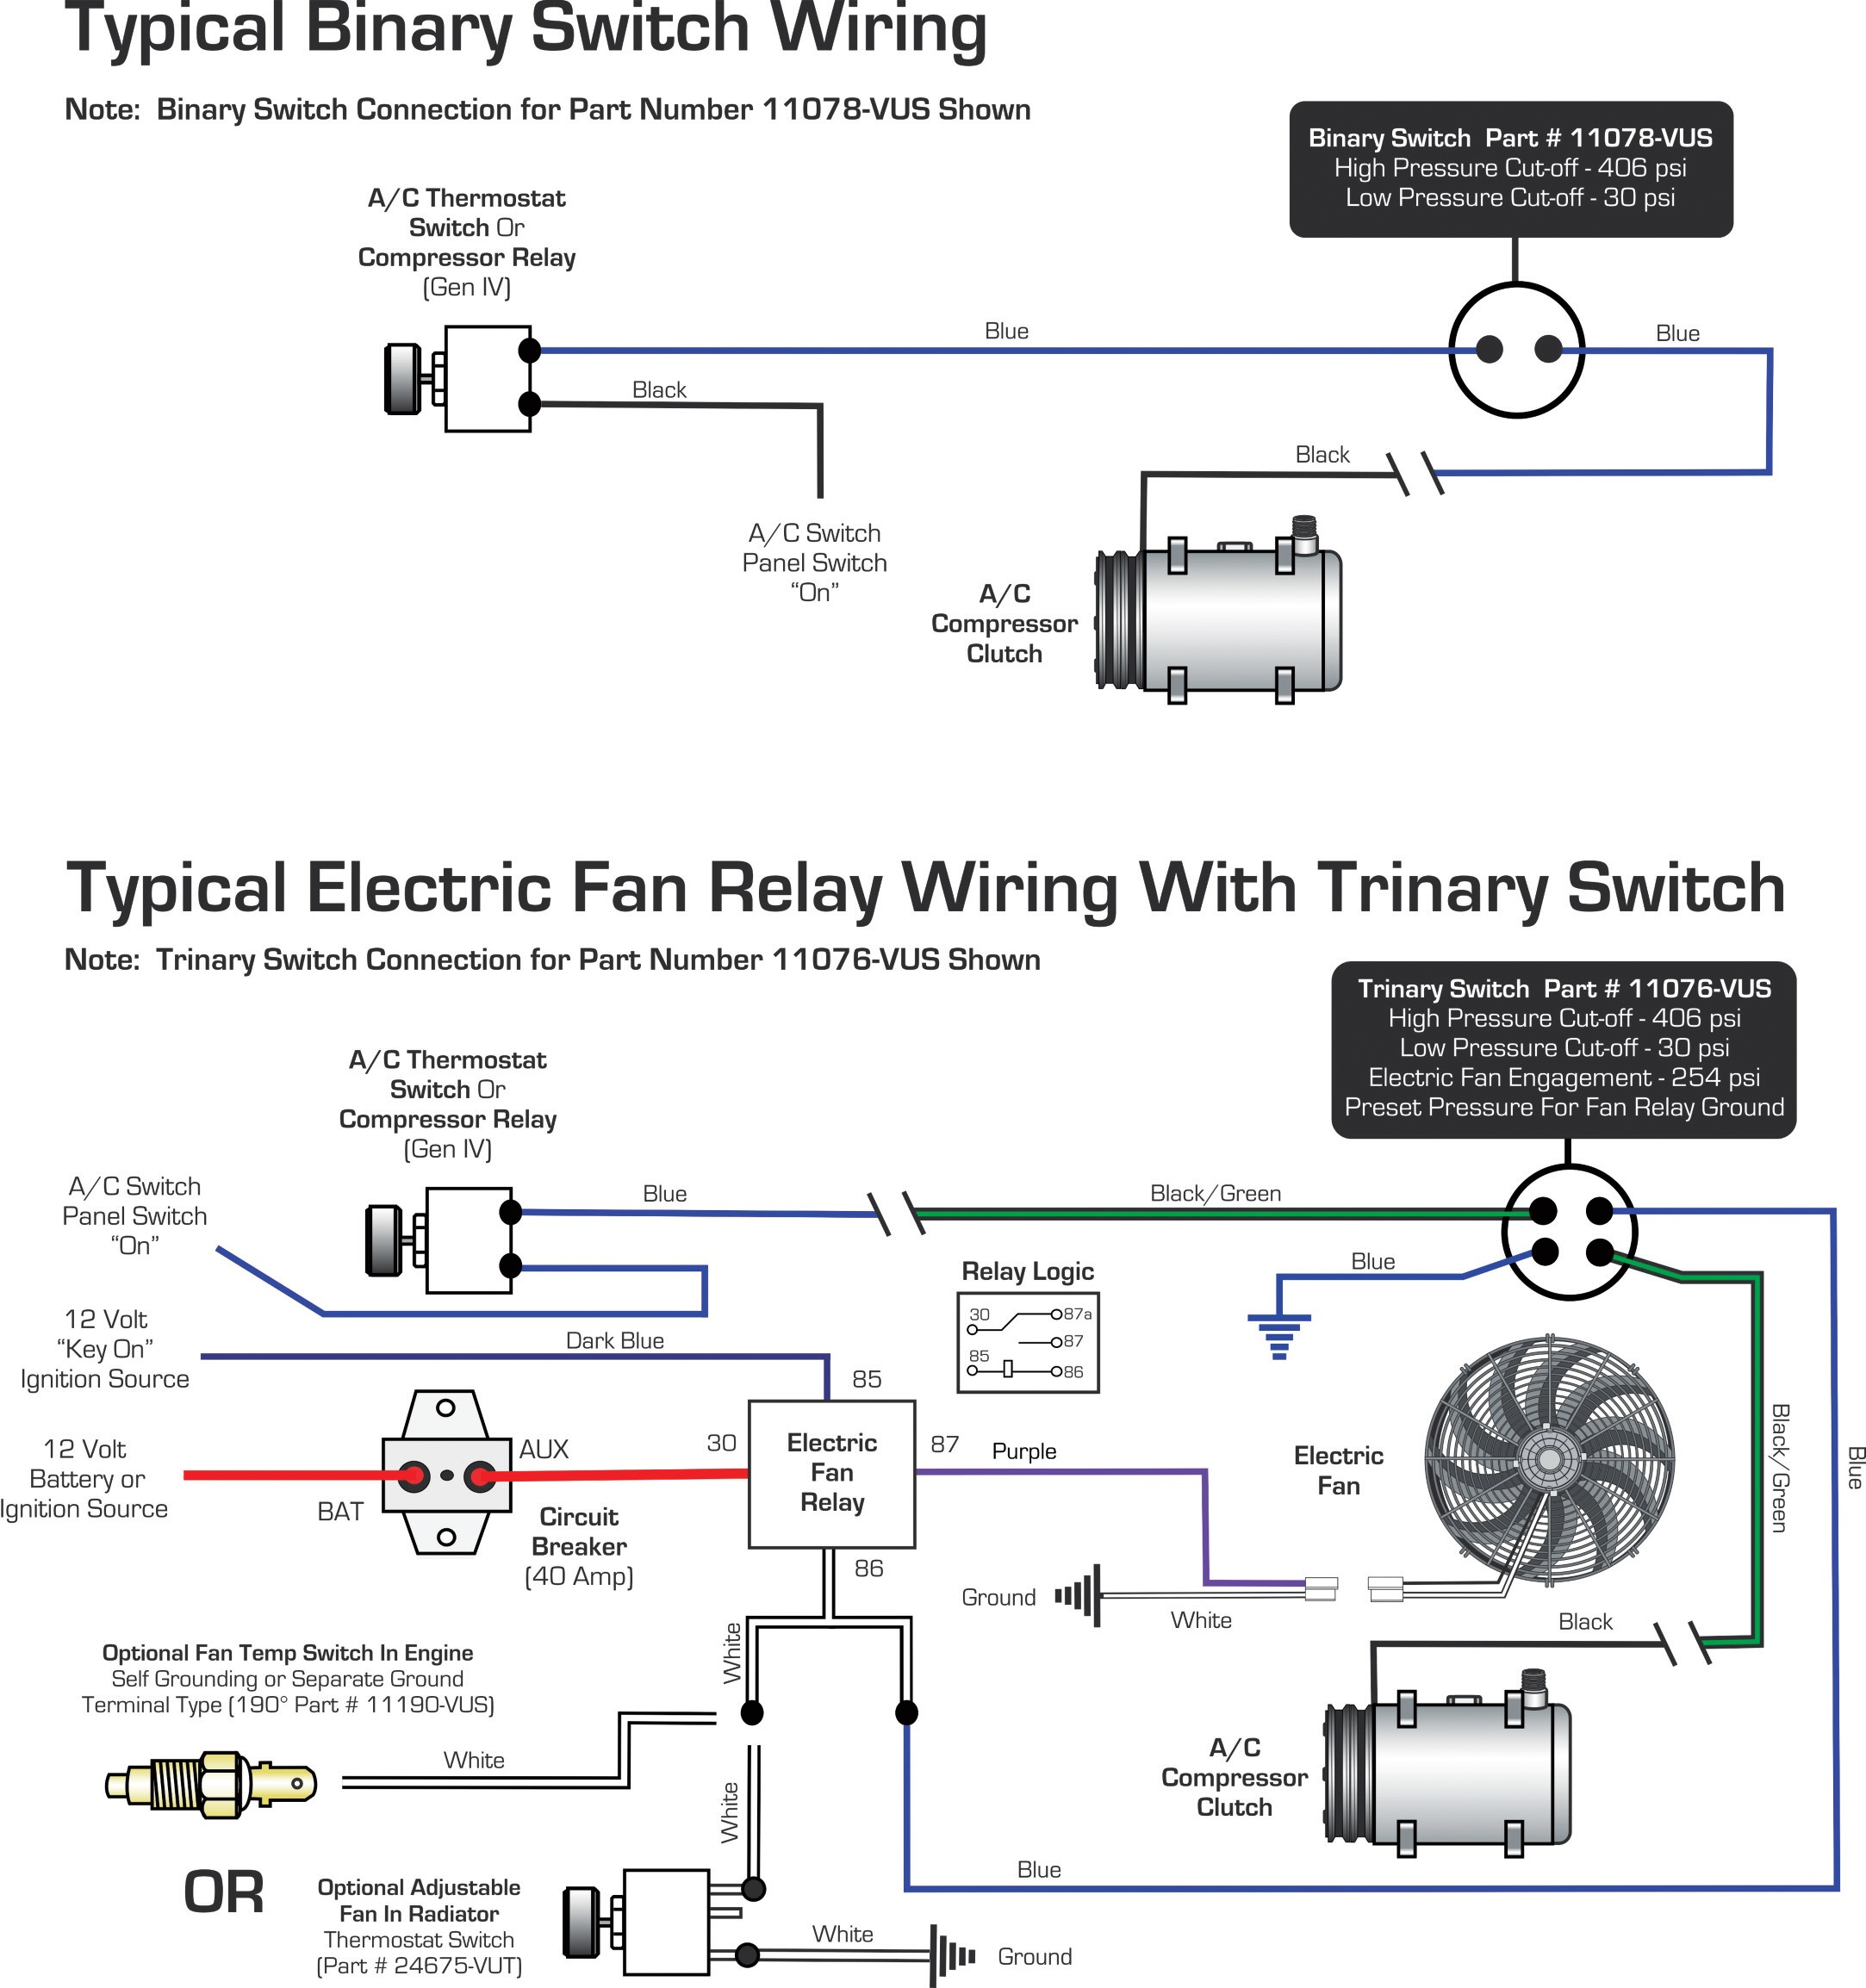 Vintage Air » Blog Archive Wiring Diagrams Binary Switch / Trinary - Vintage Air Wiring Diagram